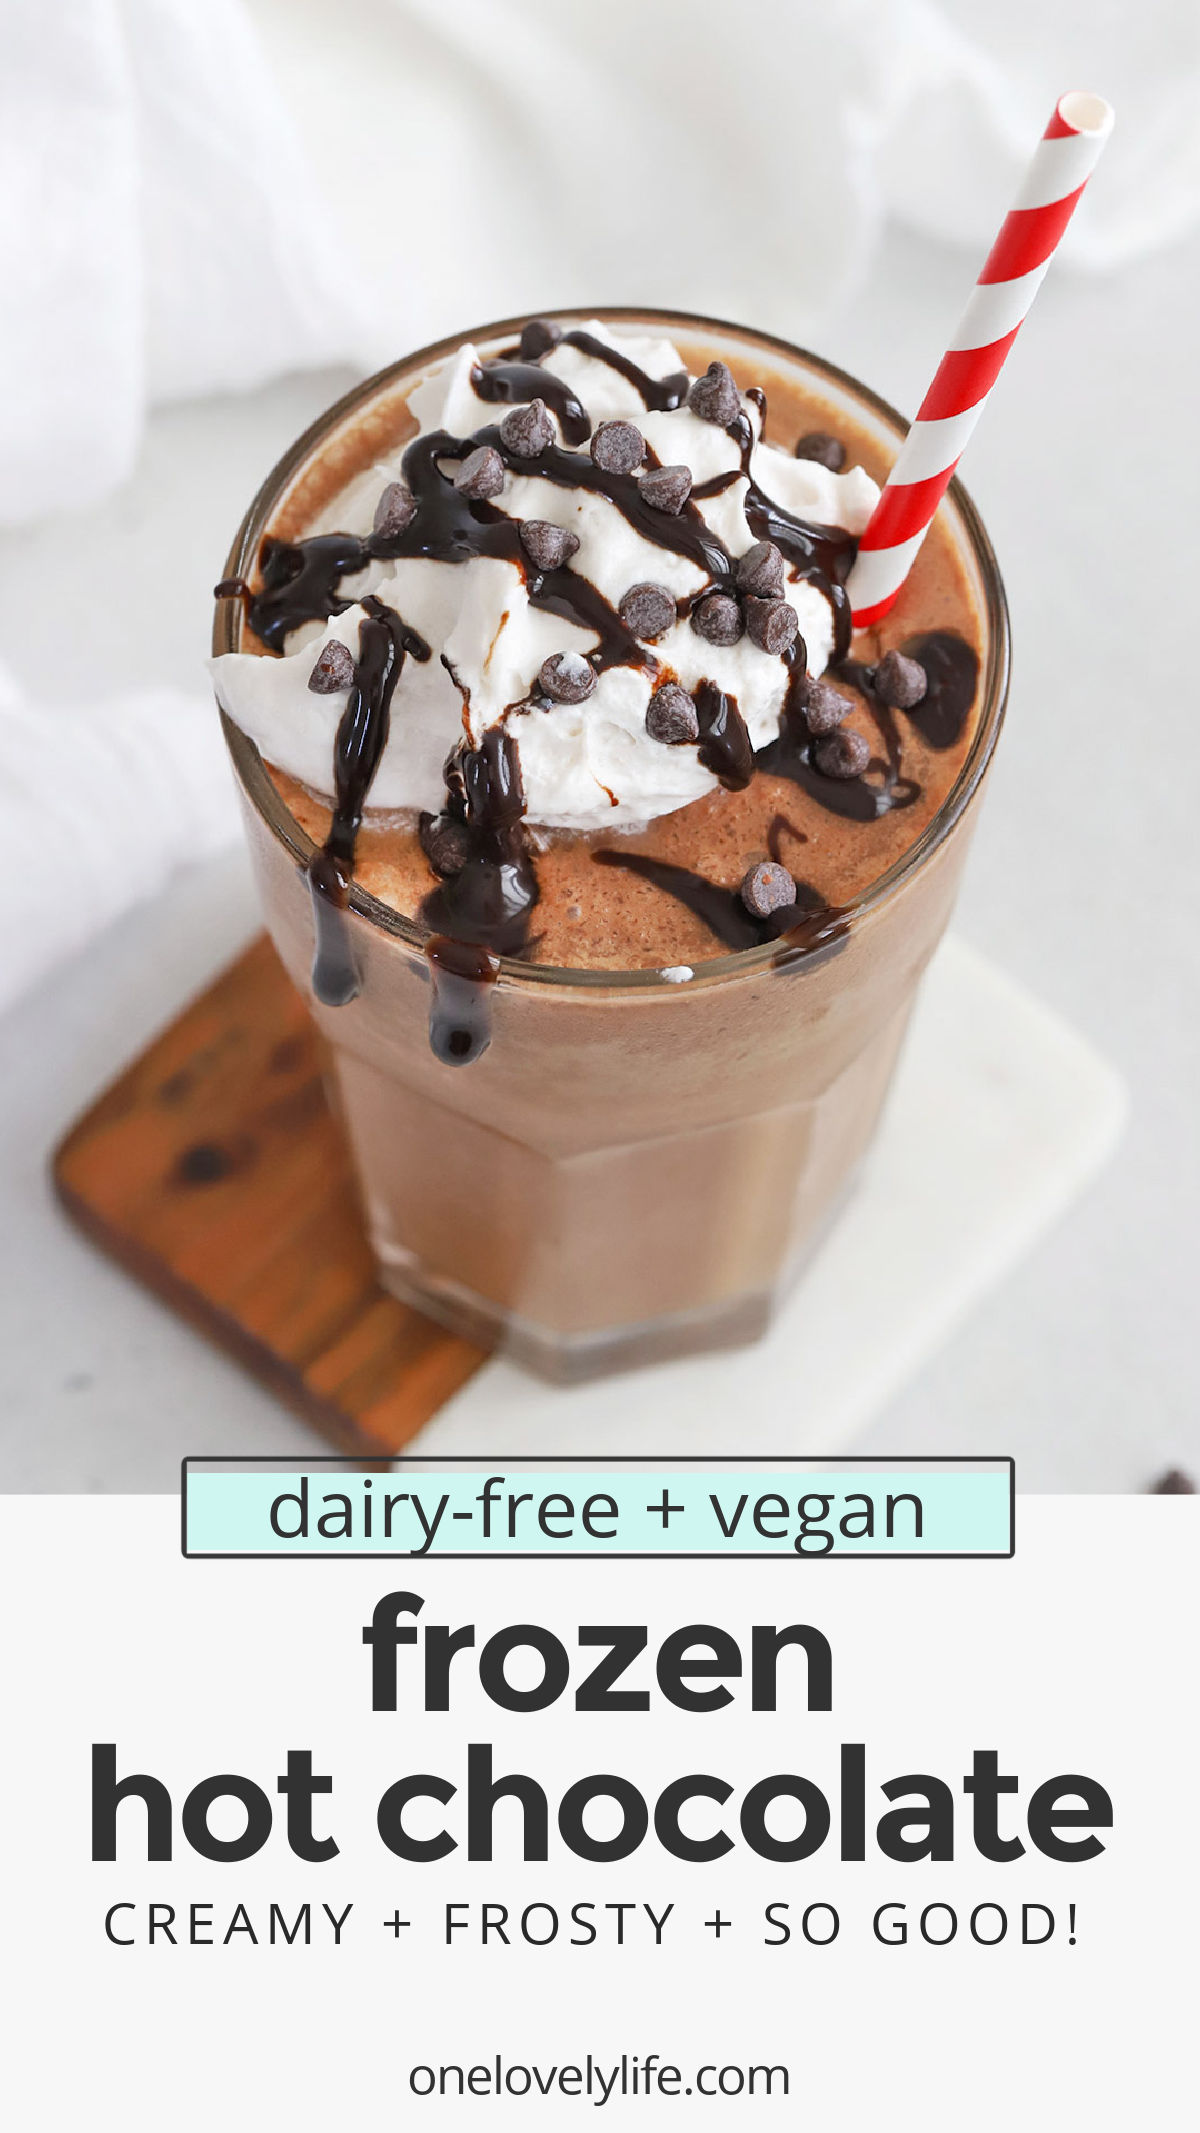 Vegan Frozen Hot Chocolate - This dairy-free frozen hot chocolate is frost, creamy, and so delicious with a swirl of whipped cream and some chocolate on top. You won't want to miss it! // Paleo Frozen Hot Chocolate // Healthy Frozen Hot Chocolate recipe #frozenhotchocolate #paleo #vegan #dairyfree #glutenfree